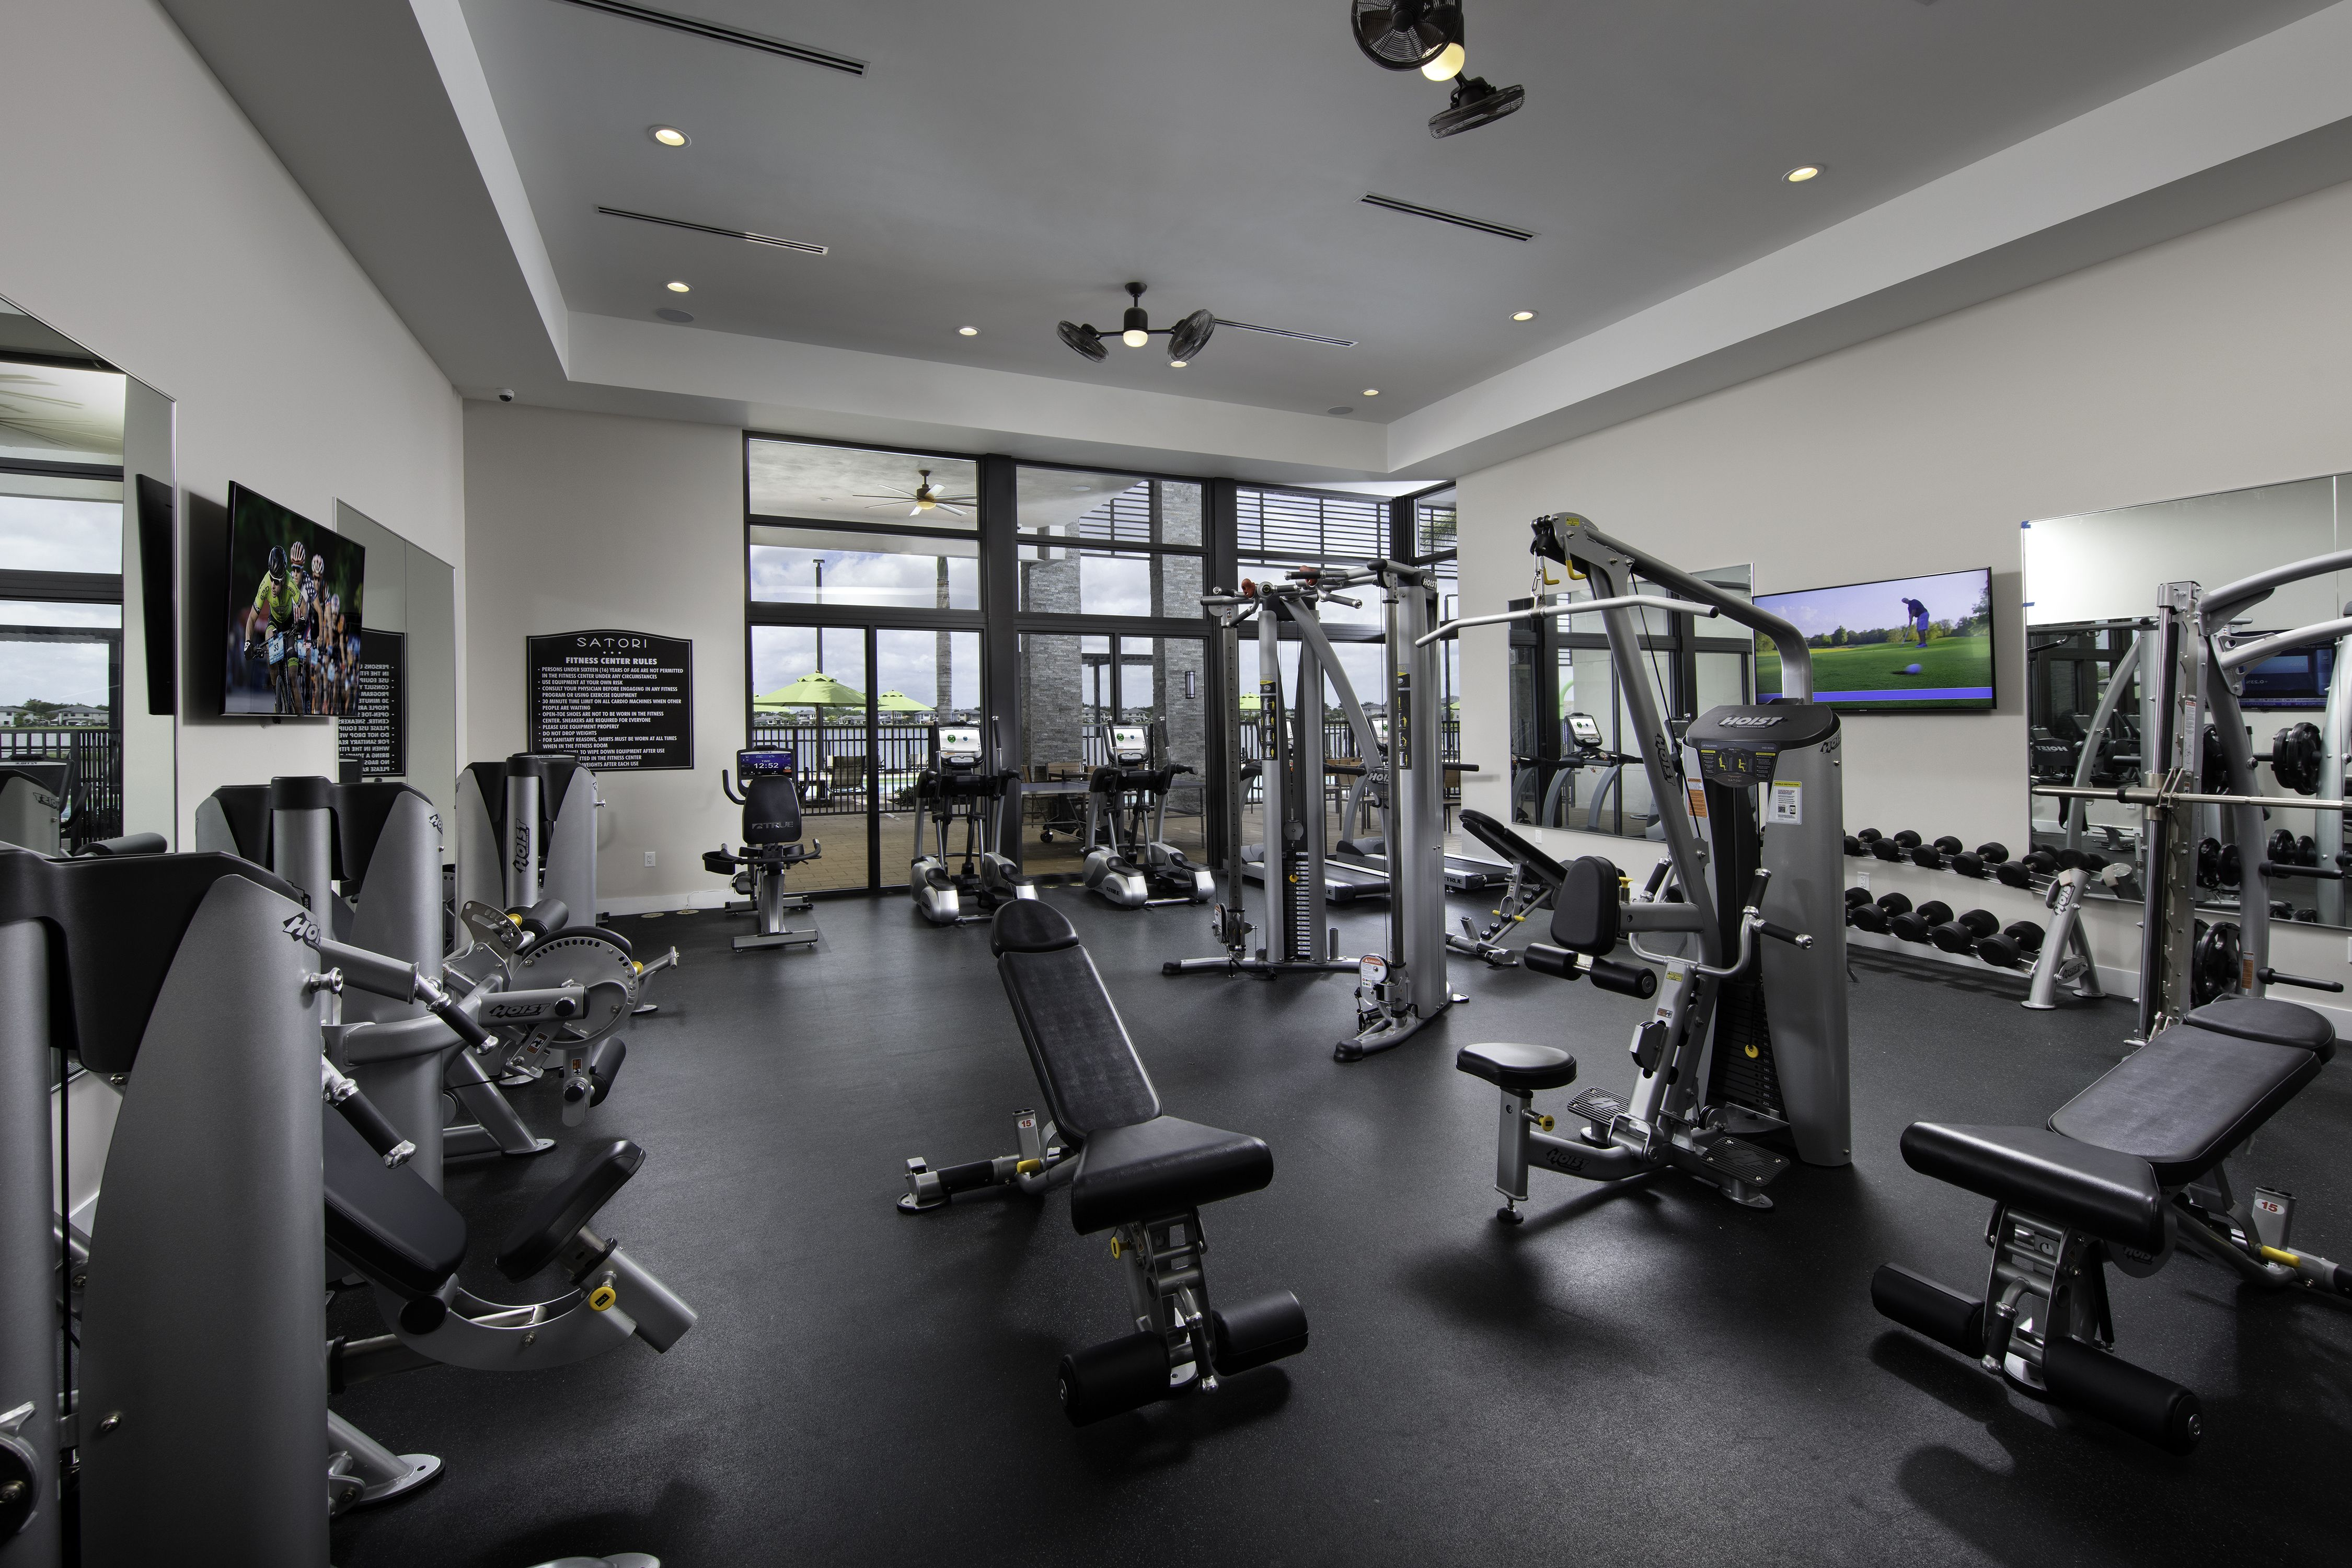 Start Your Saturday Morning Off Right With A Work Out At The Satori Clubhouse Gym Satori Miami Lakes Fl Gym Room At Home Home Gym Design Home Builders